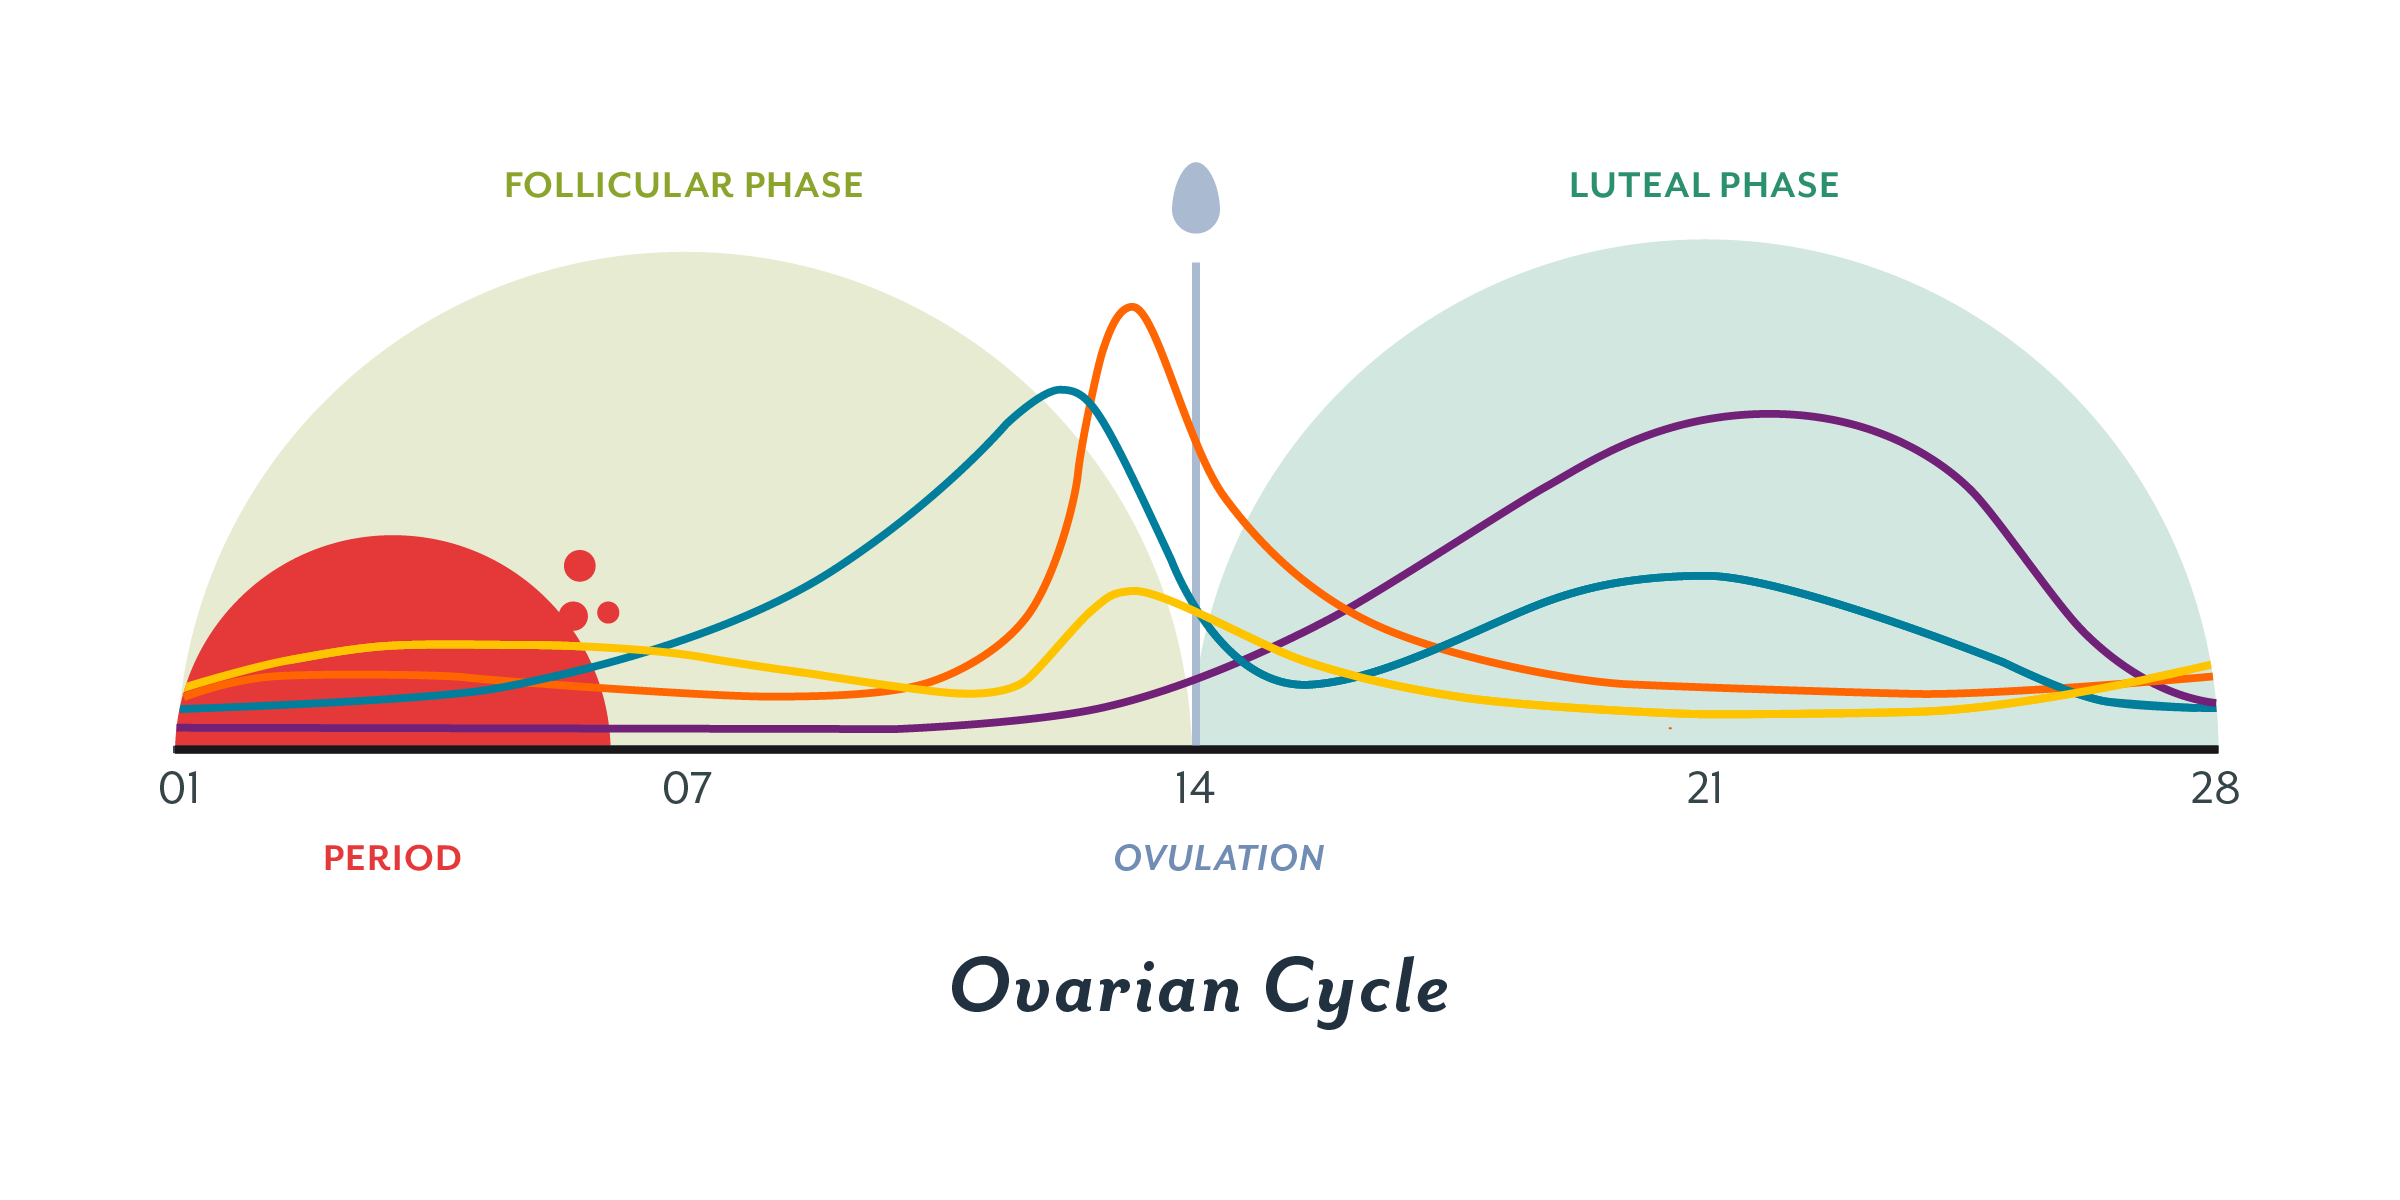 phases of the menstrual cycle